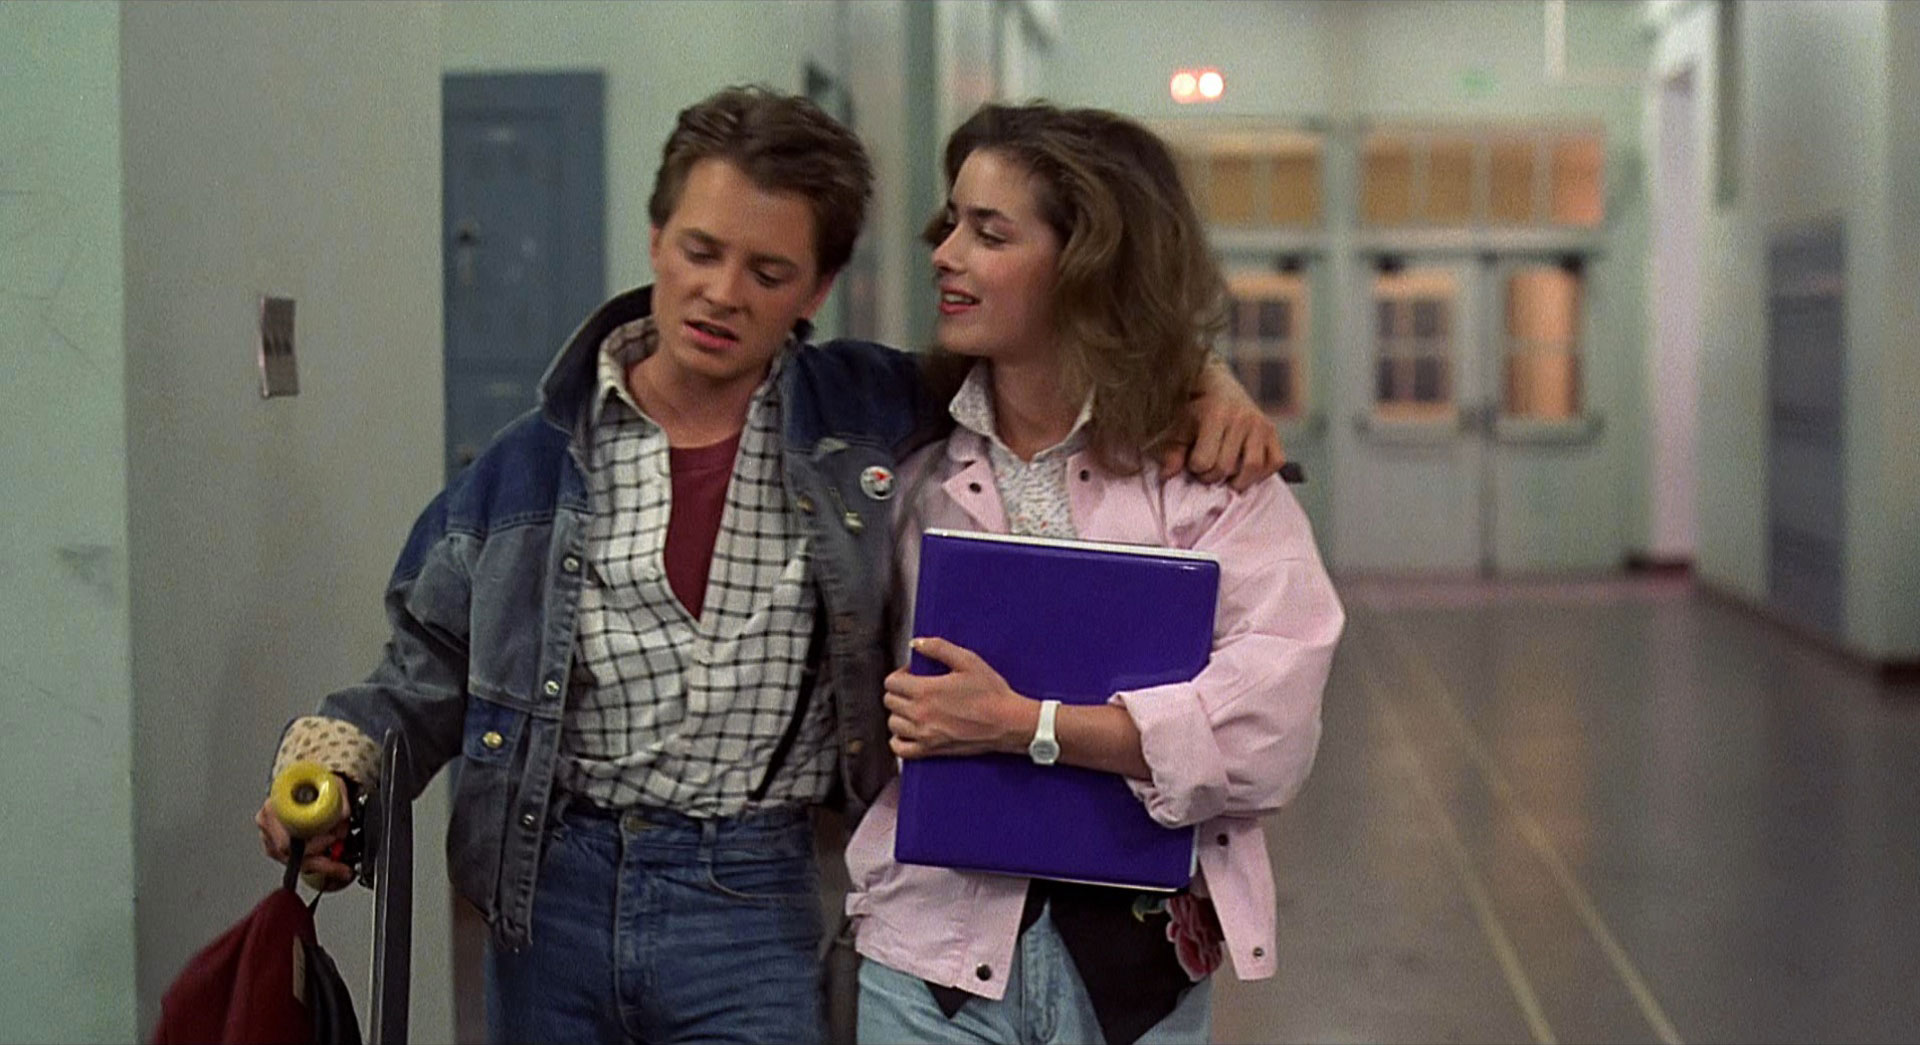 Claudia Wells (BACK TO THE FUTURE) Talks About Working With Michael J. Fox And Men's Clothing